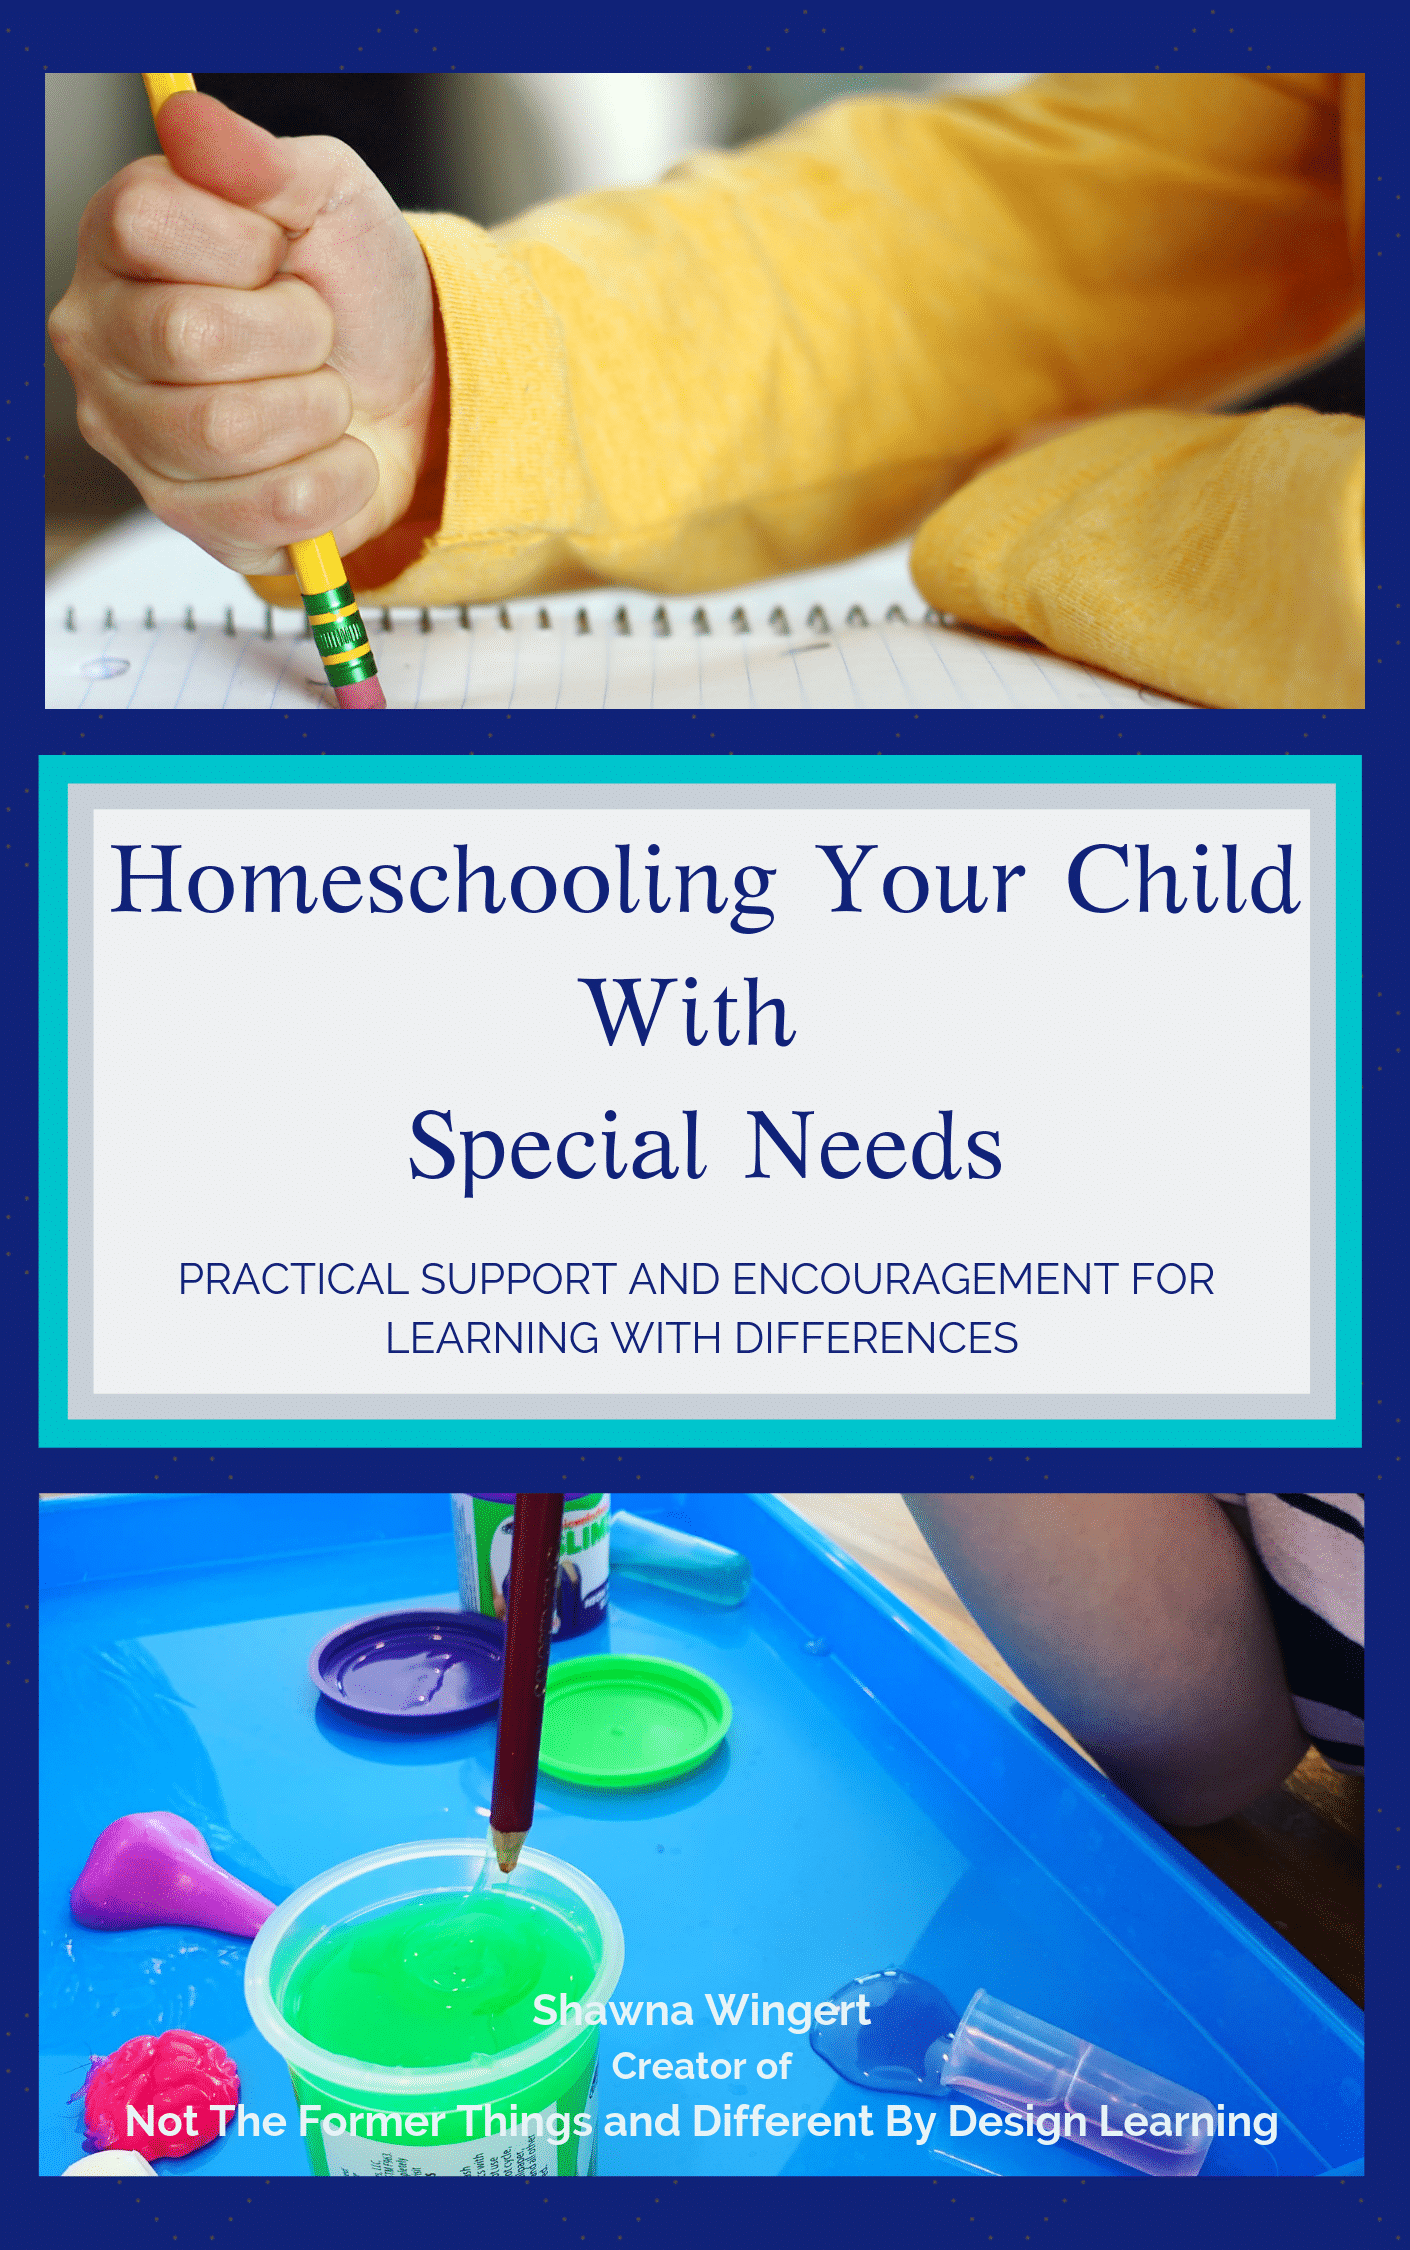 Homeschooling Your Child With Special Needs: Practical Support And Encouragement For Learning With Differences